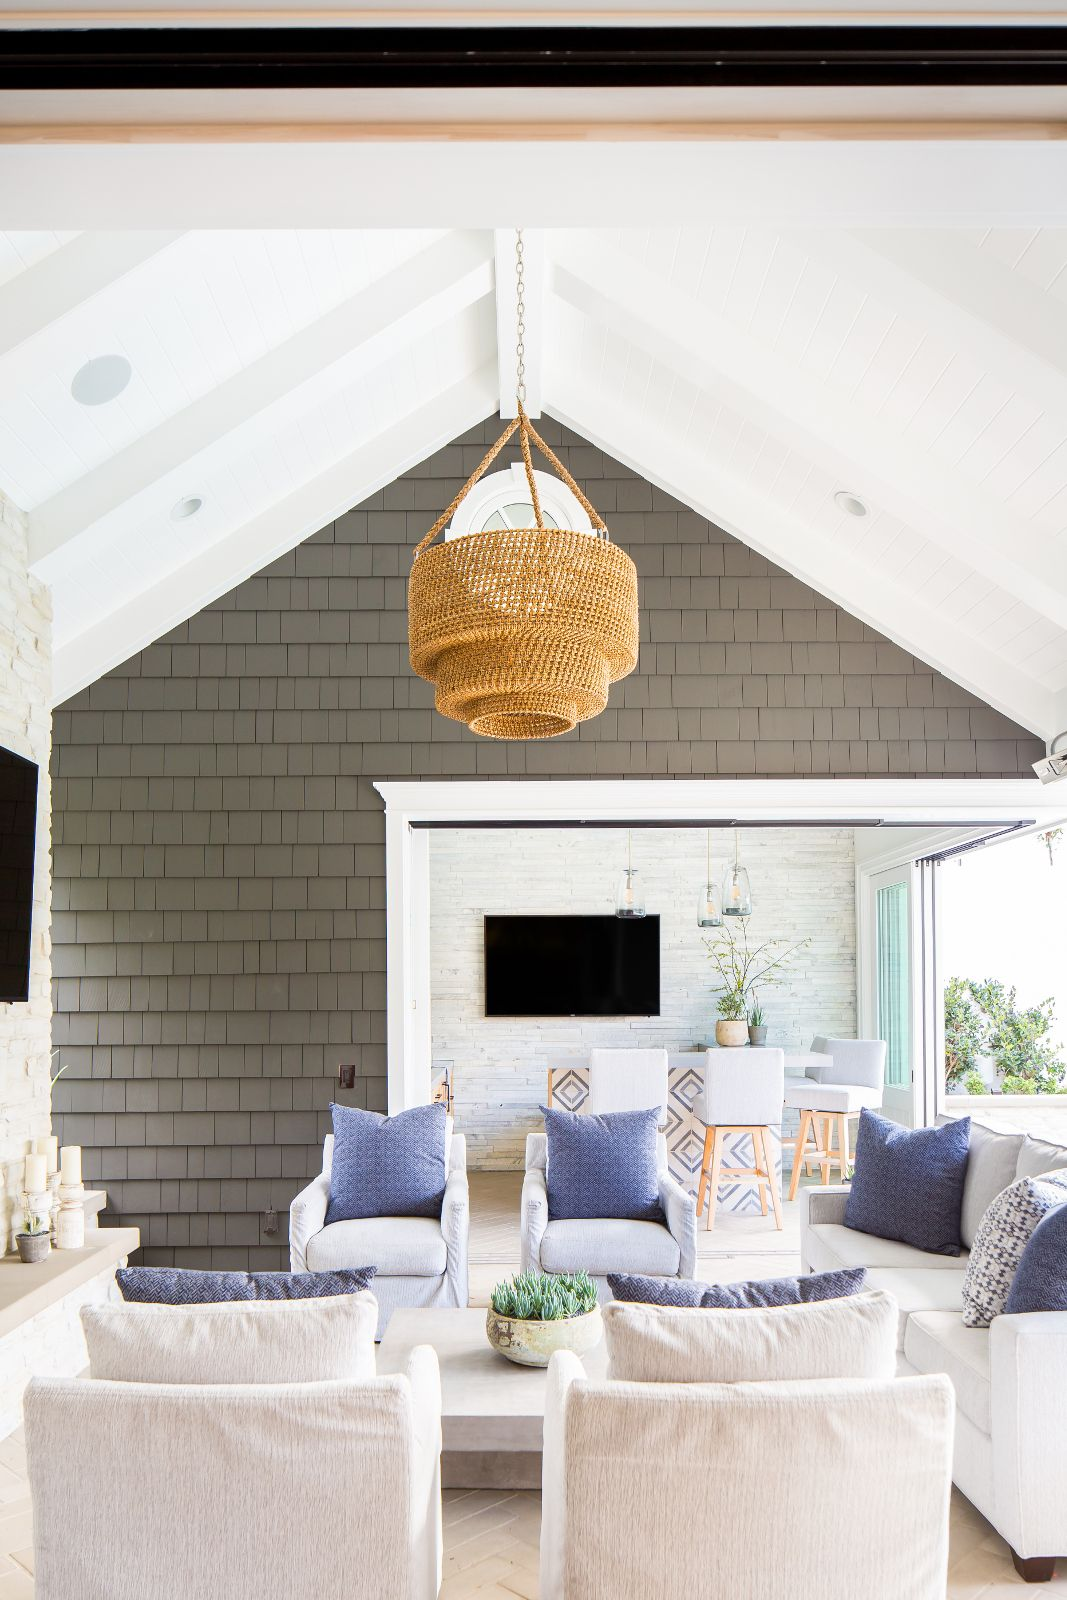 Outdoor Living By Brooke Wagner Design With Images Bar Interior Design Home Decor Styles